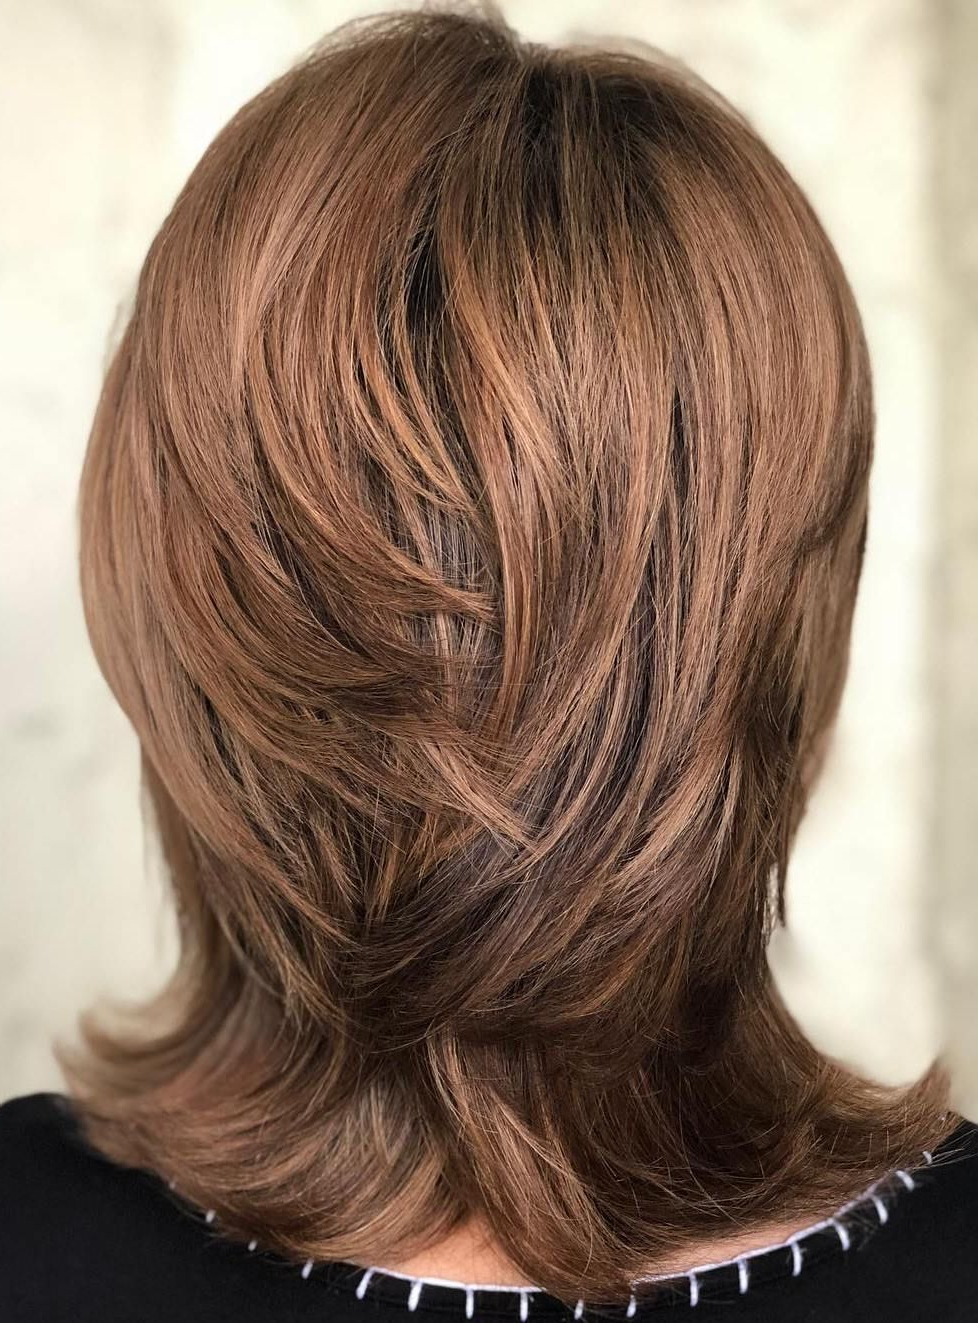 Pin On Haircuts Regarding Preferred Long Feather Cut Bangs Hairstyles With Flipped Ends (View 10 of 20)